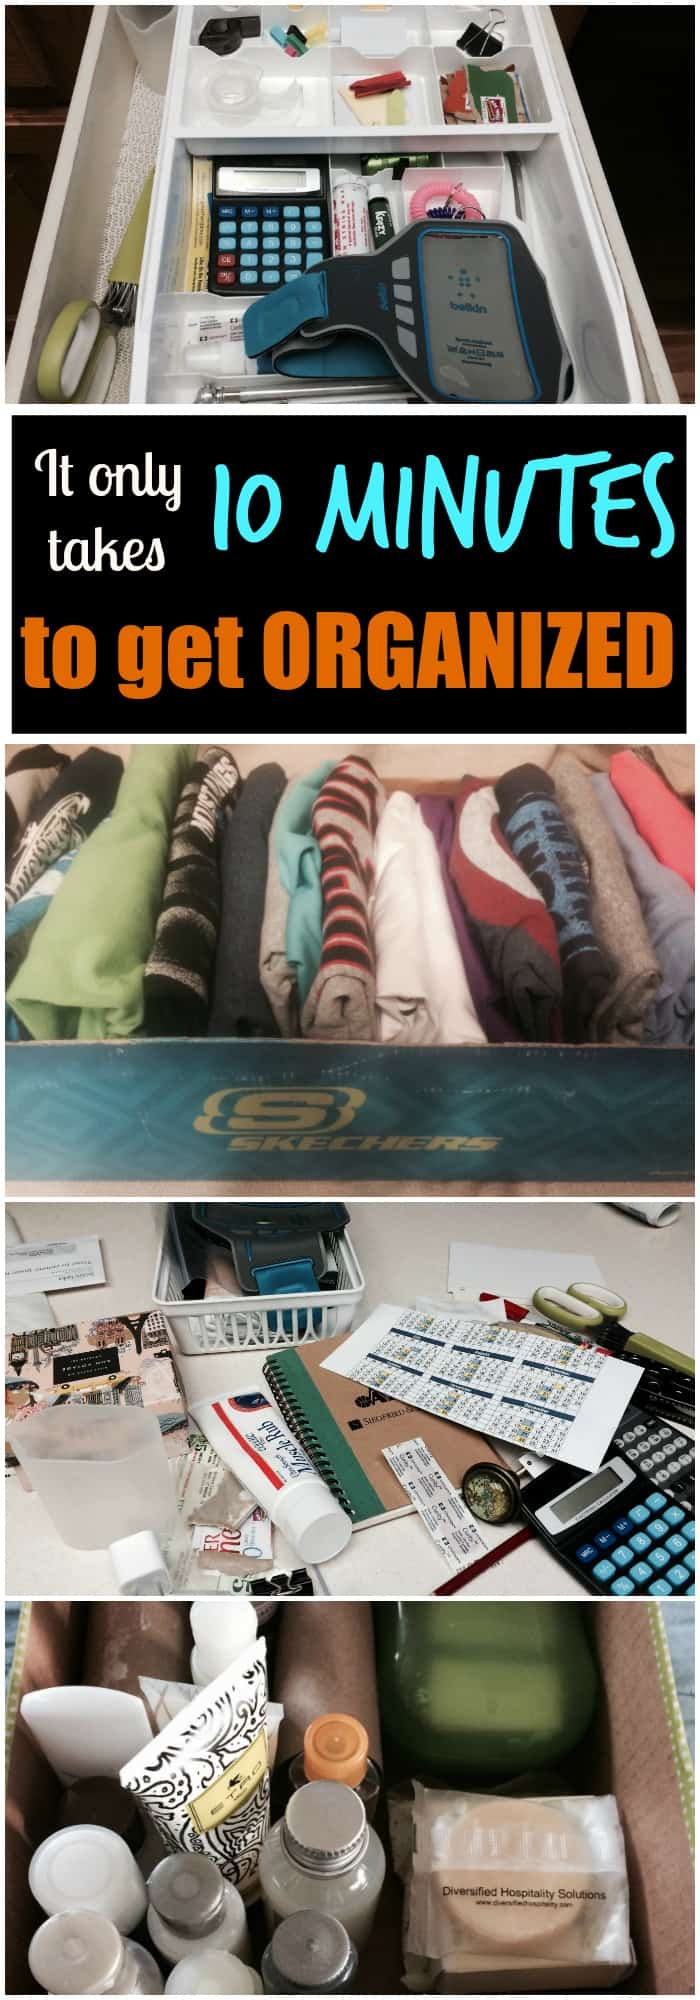 If you have 10 minutes you can get more organized today!